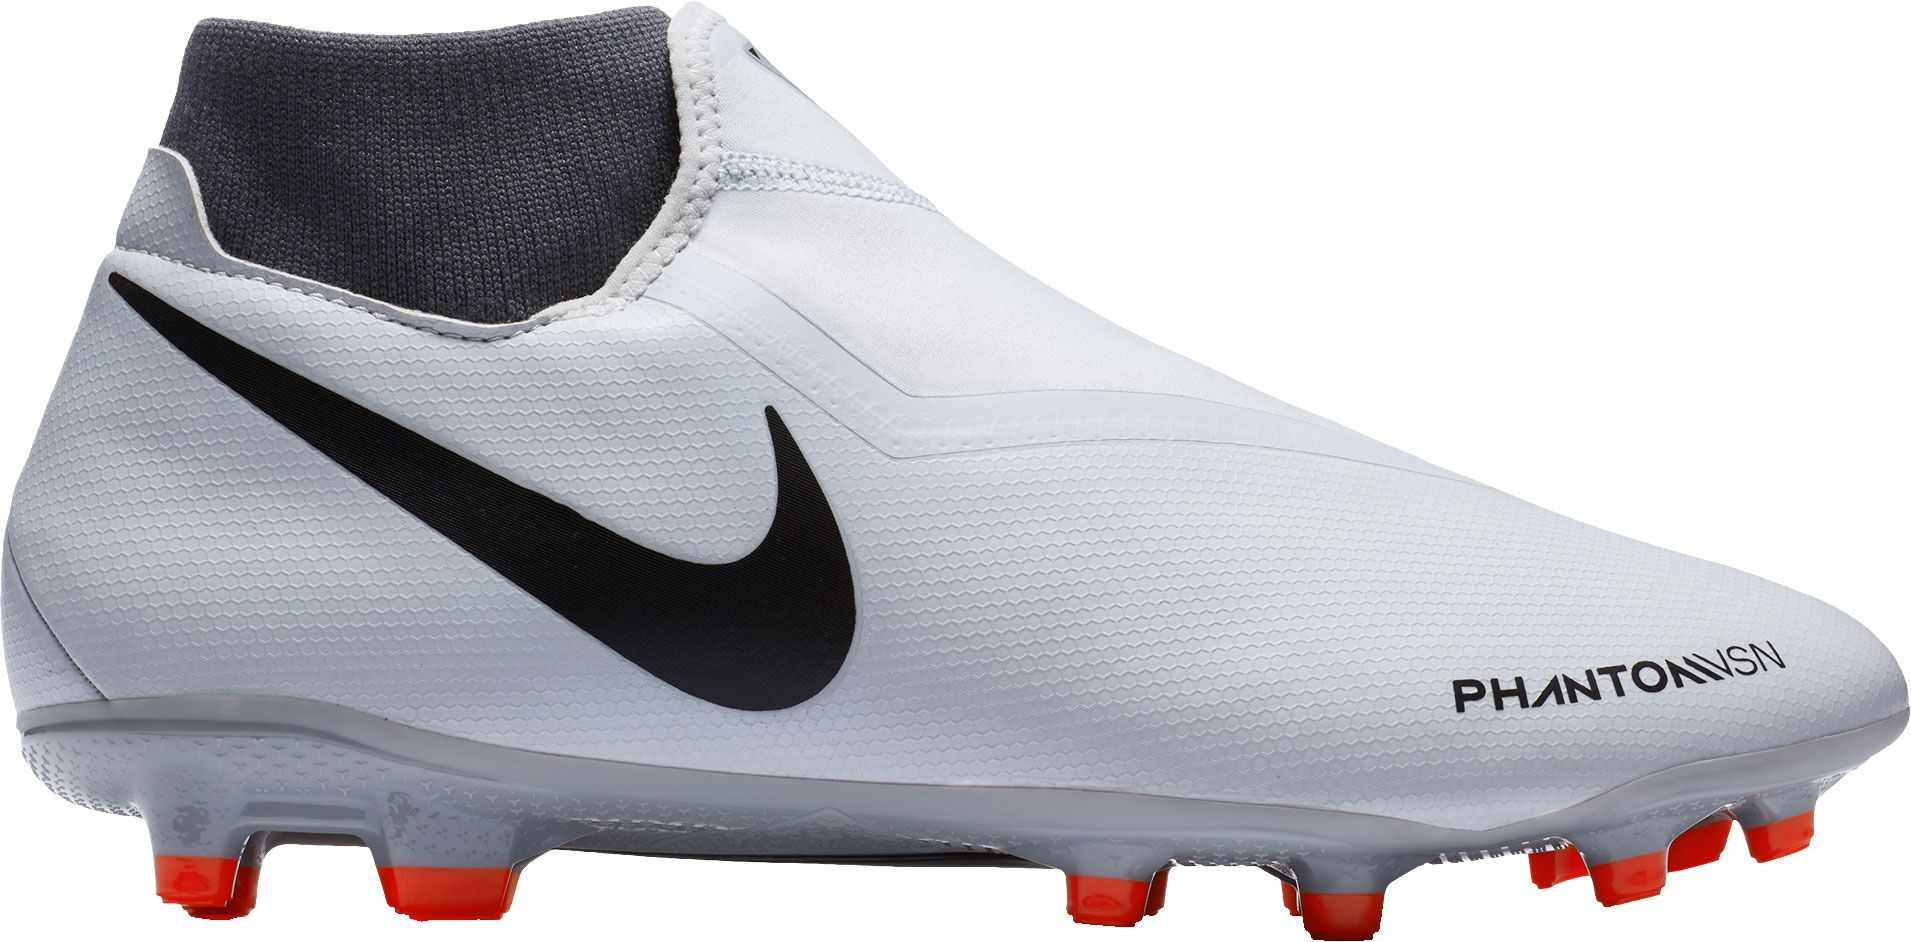 b08508686 Nike Phantom Vision Academy Dynamic Fit MG Soccer Cleats, Men's, Size:  M10.5/W12, Gray